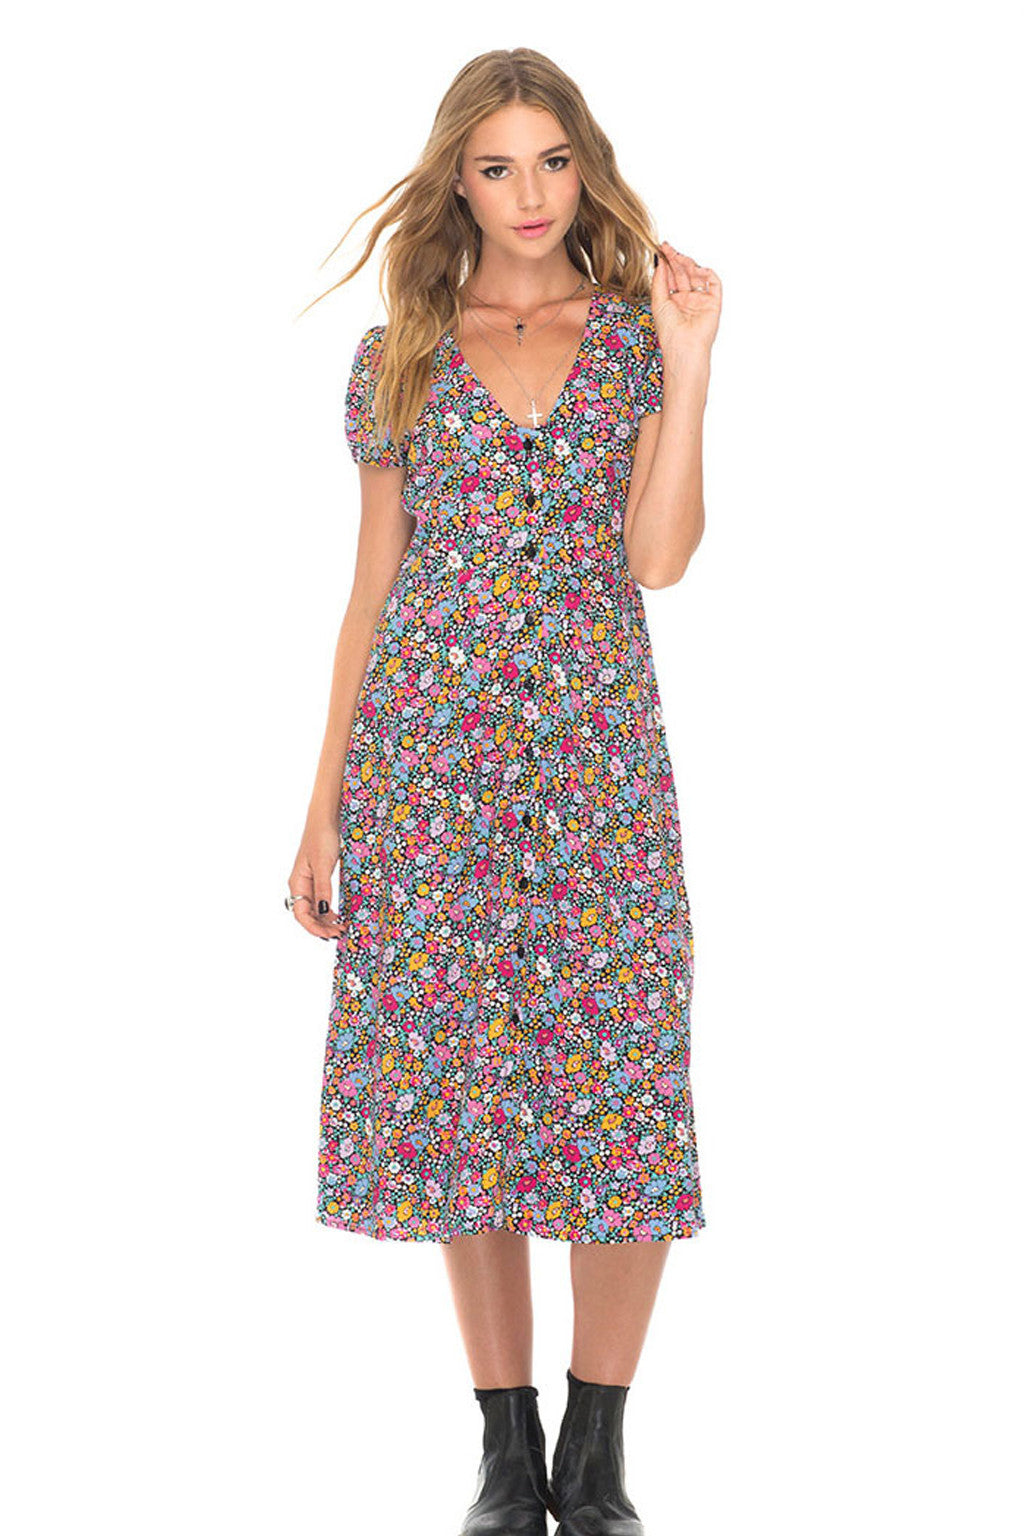 Zella Stone: Dress - Floral Dress - Motel